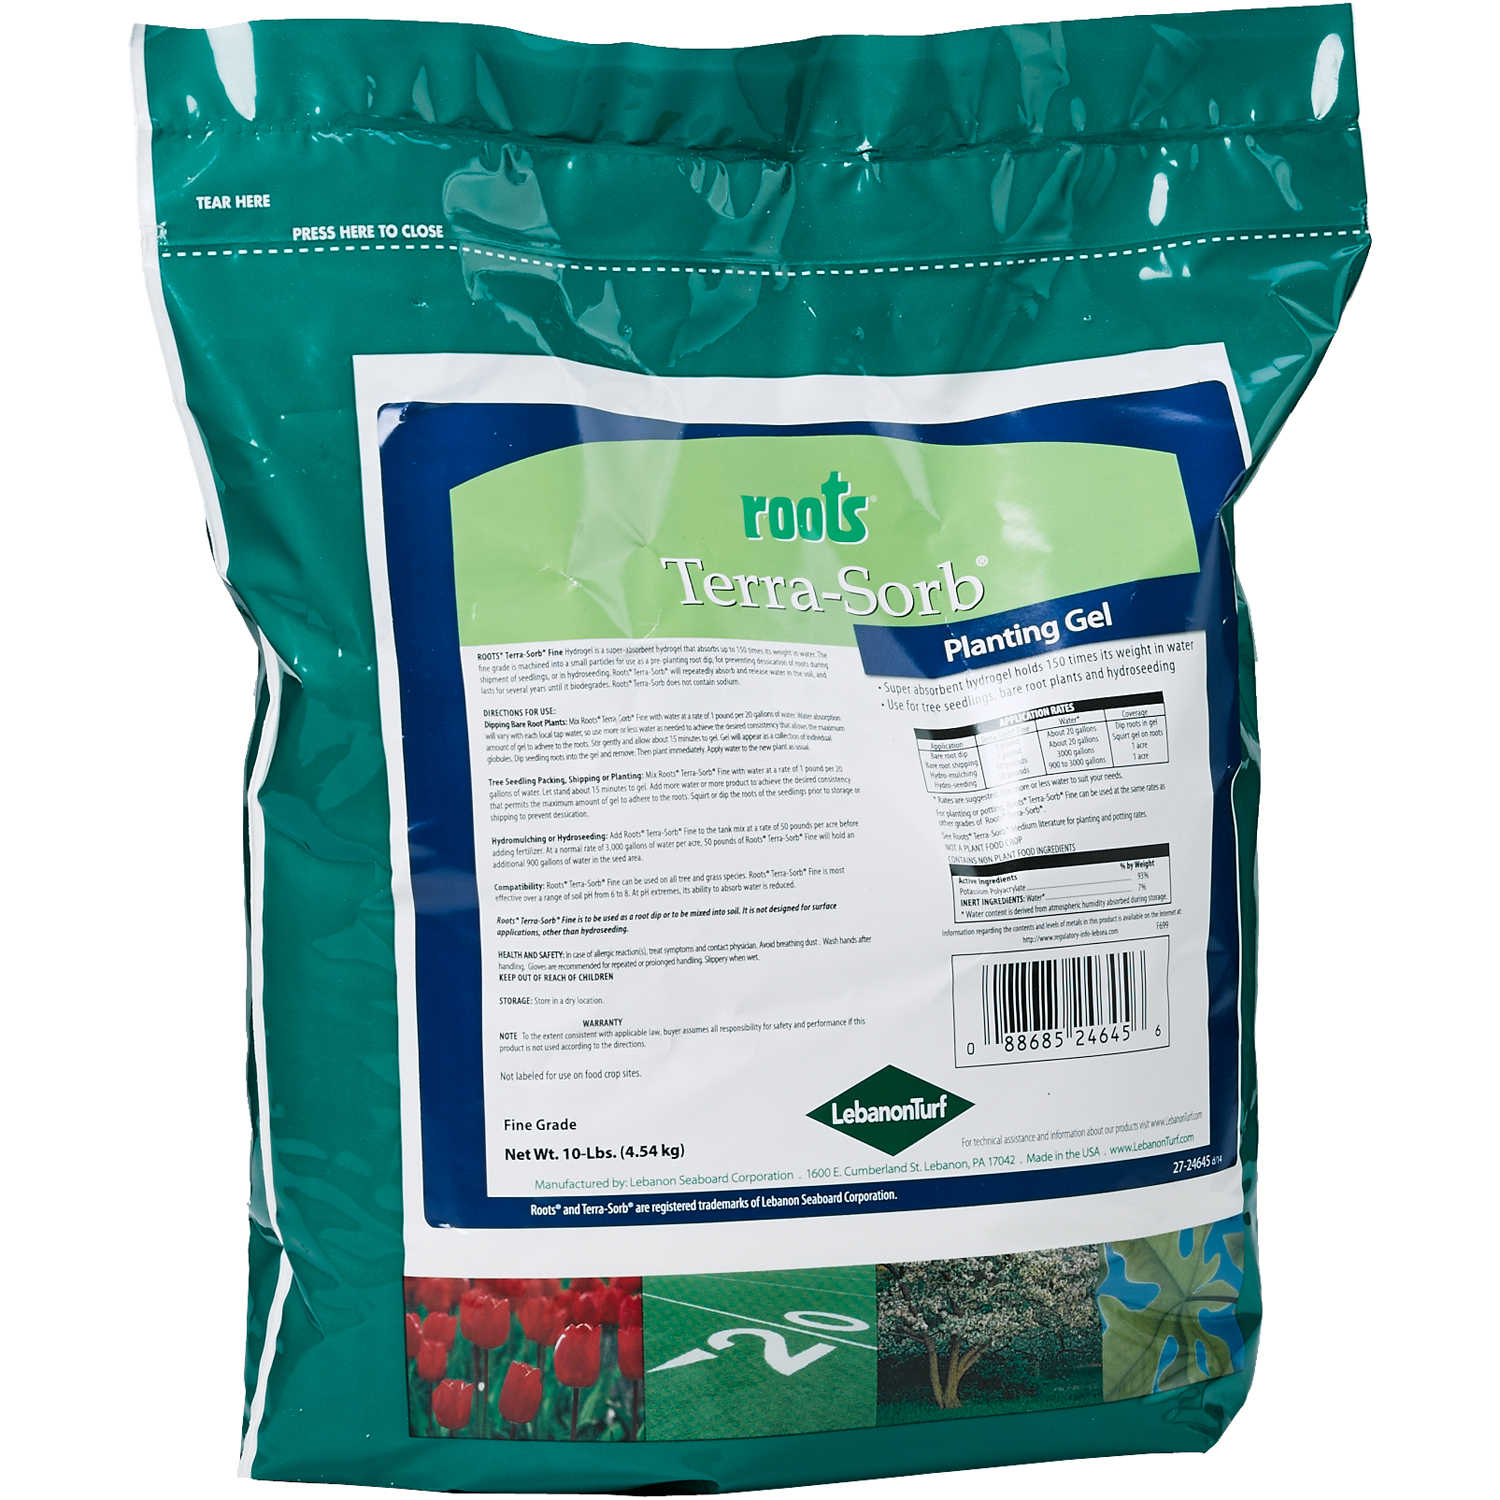 10 Lb Bag Roots Terra Sor Forestry Suppliers Inc Super Pel